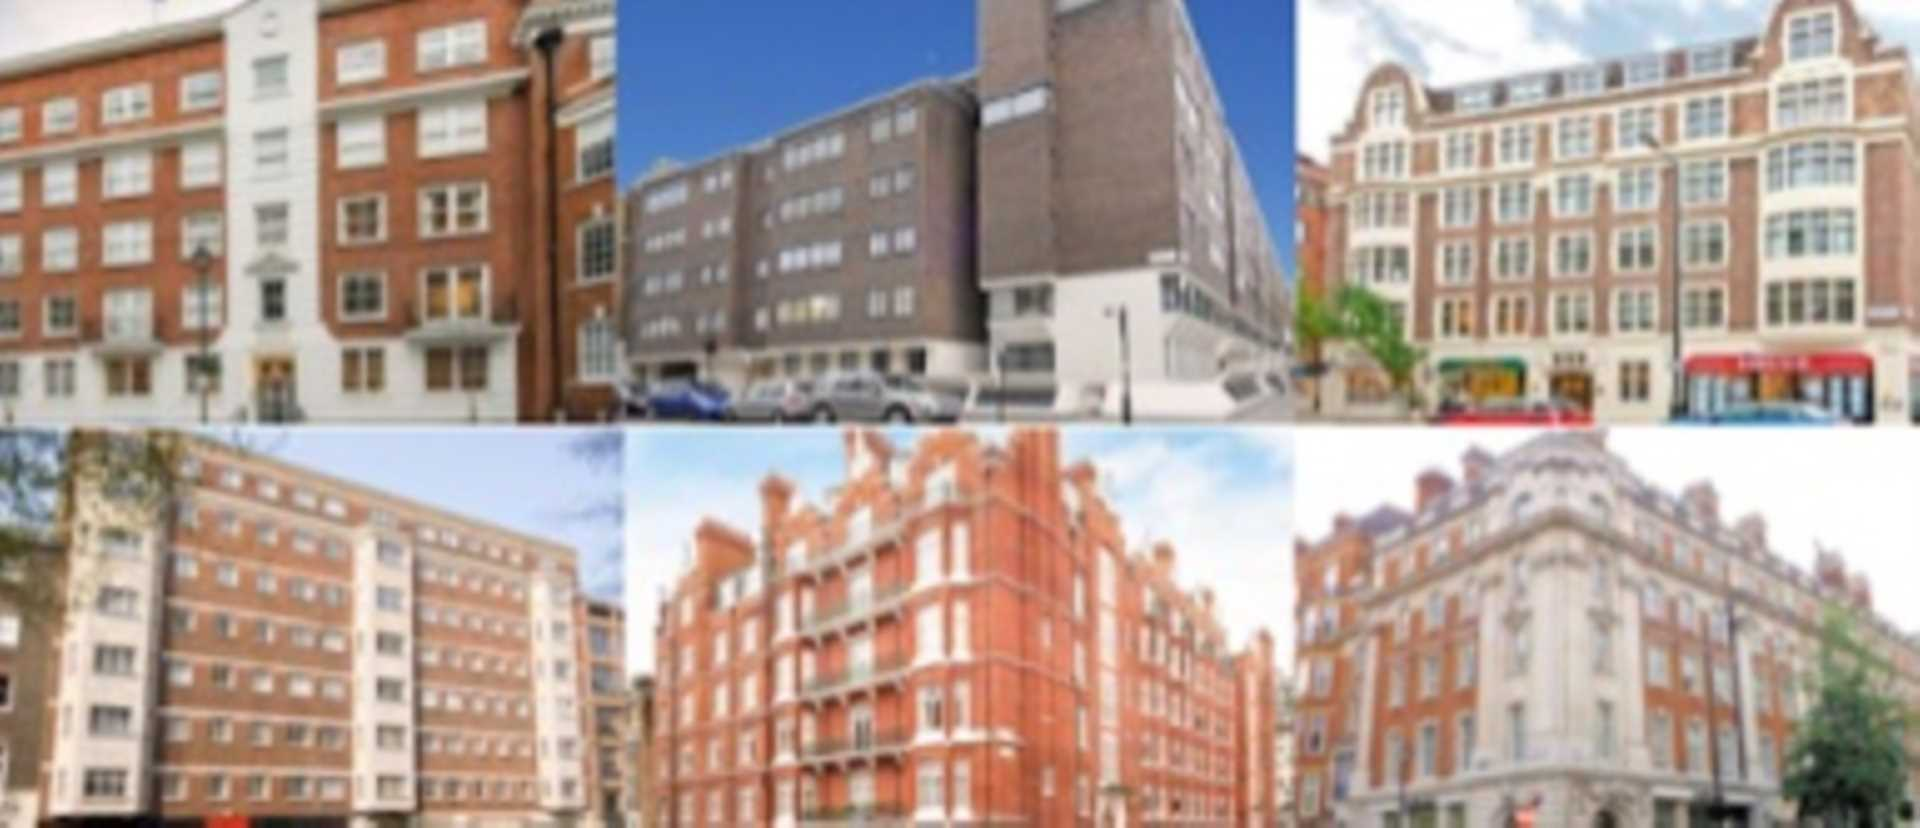 Marylebone block of flats part 2 - W1G facing off against W1U! Where should we be focussing our investment attentions, which area presents us with a better buy-to-let potential for this property type?!